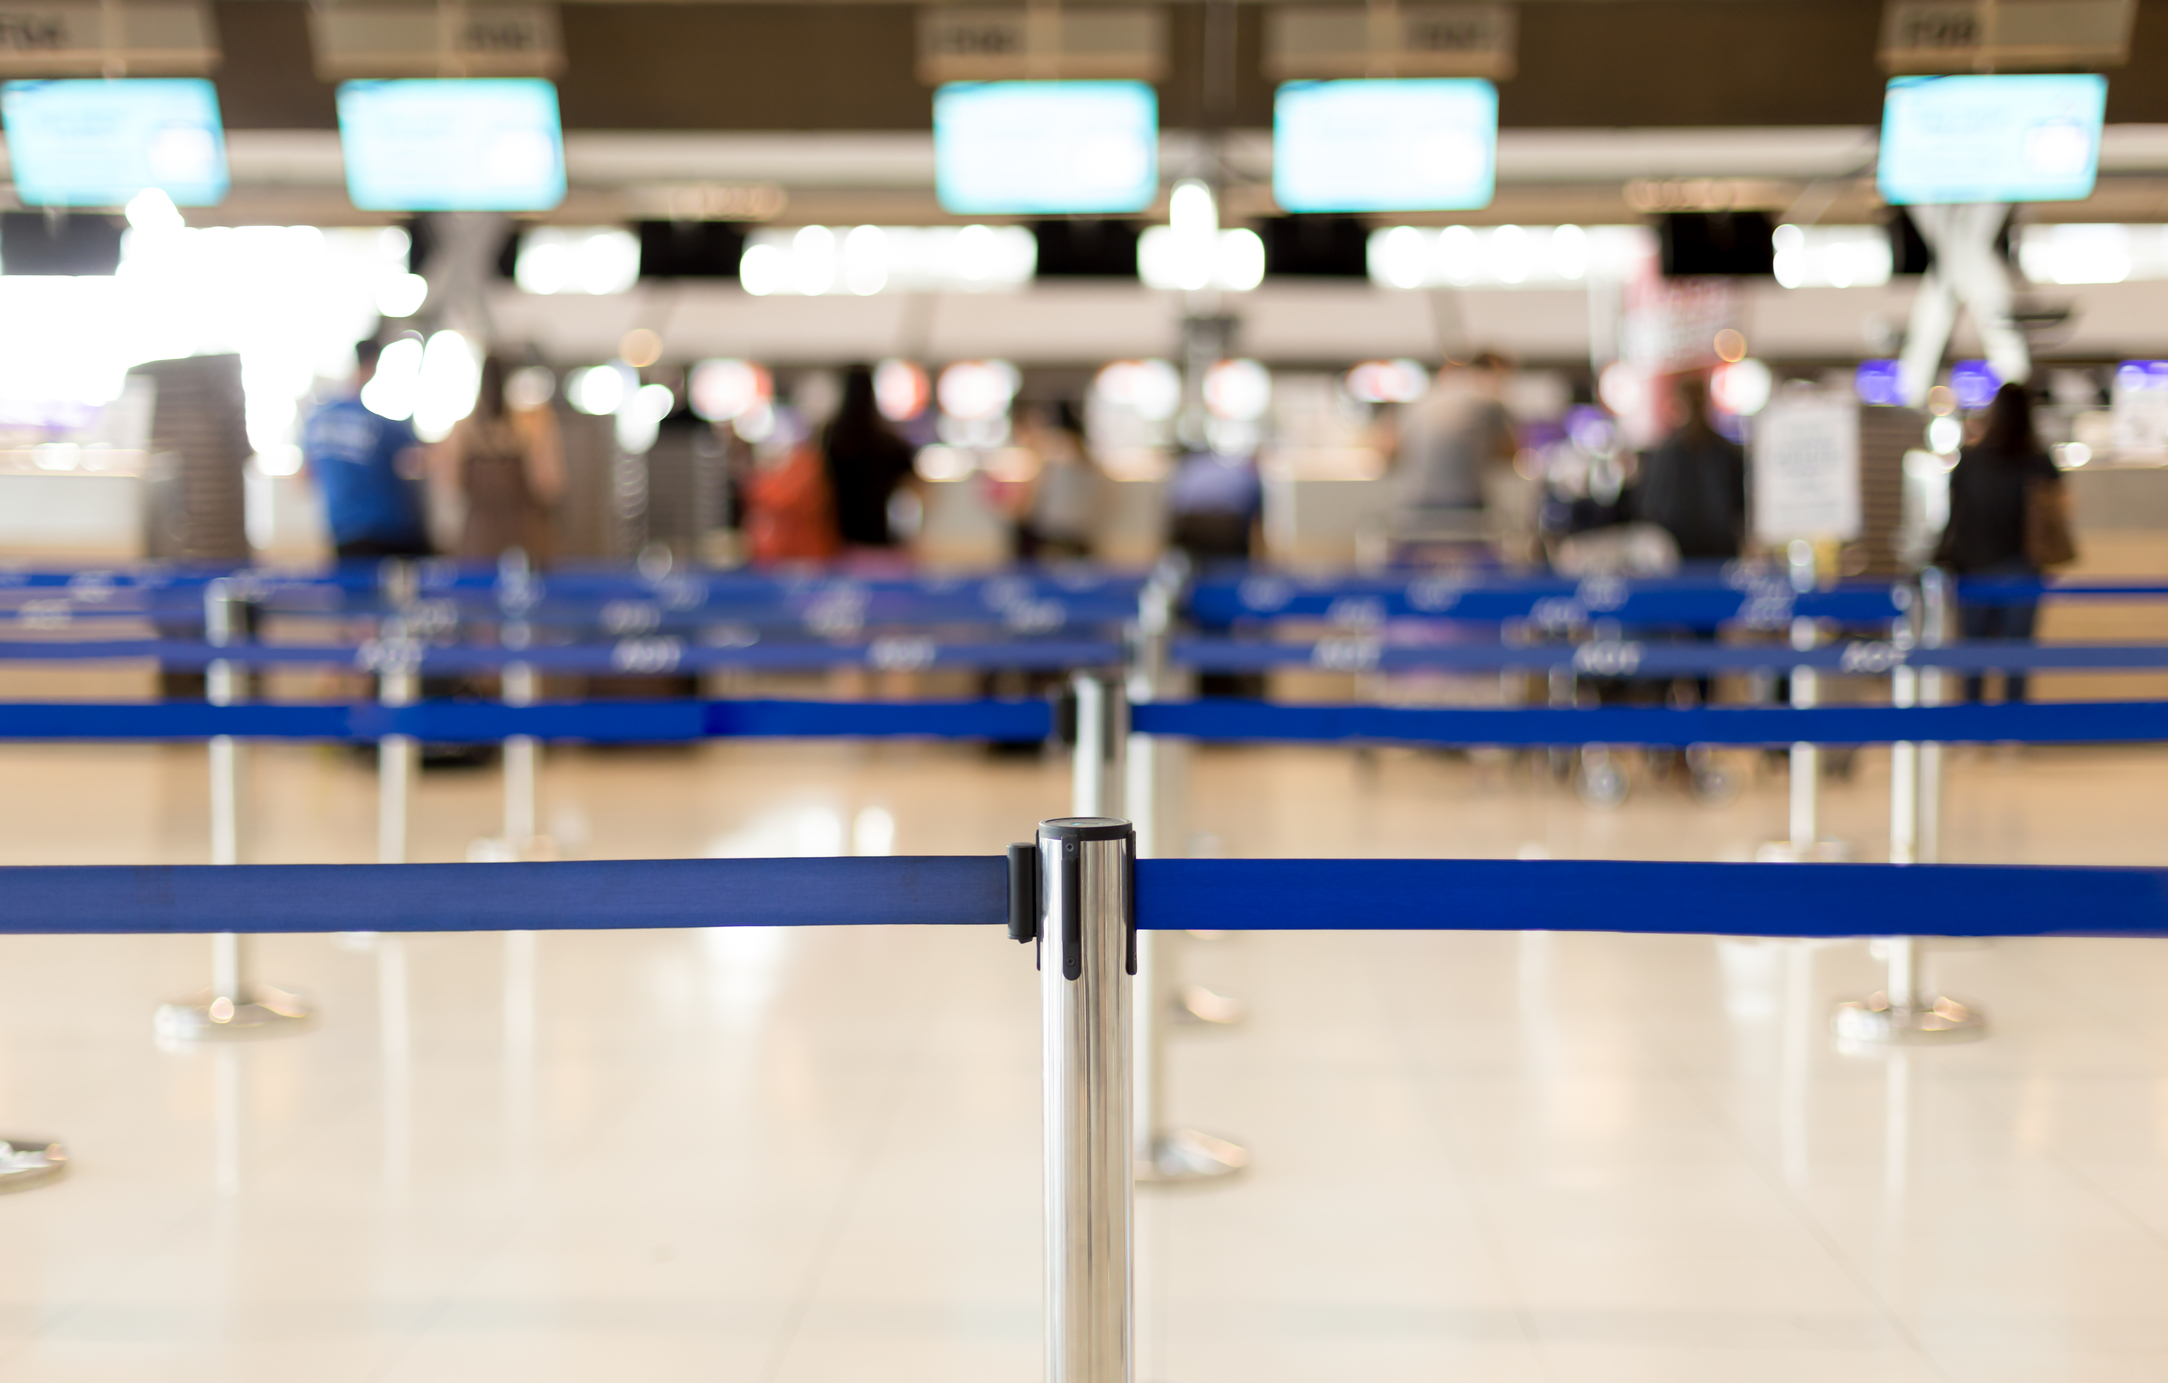 airport-security.jpg?mtime=20190320110500#asset:105229